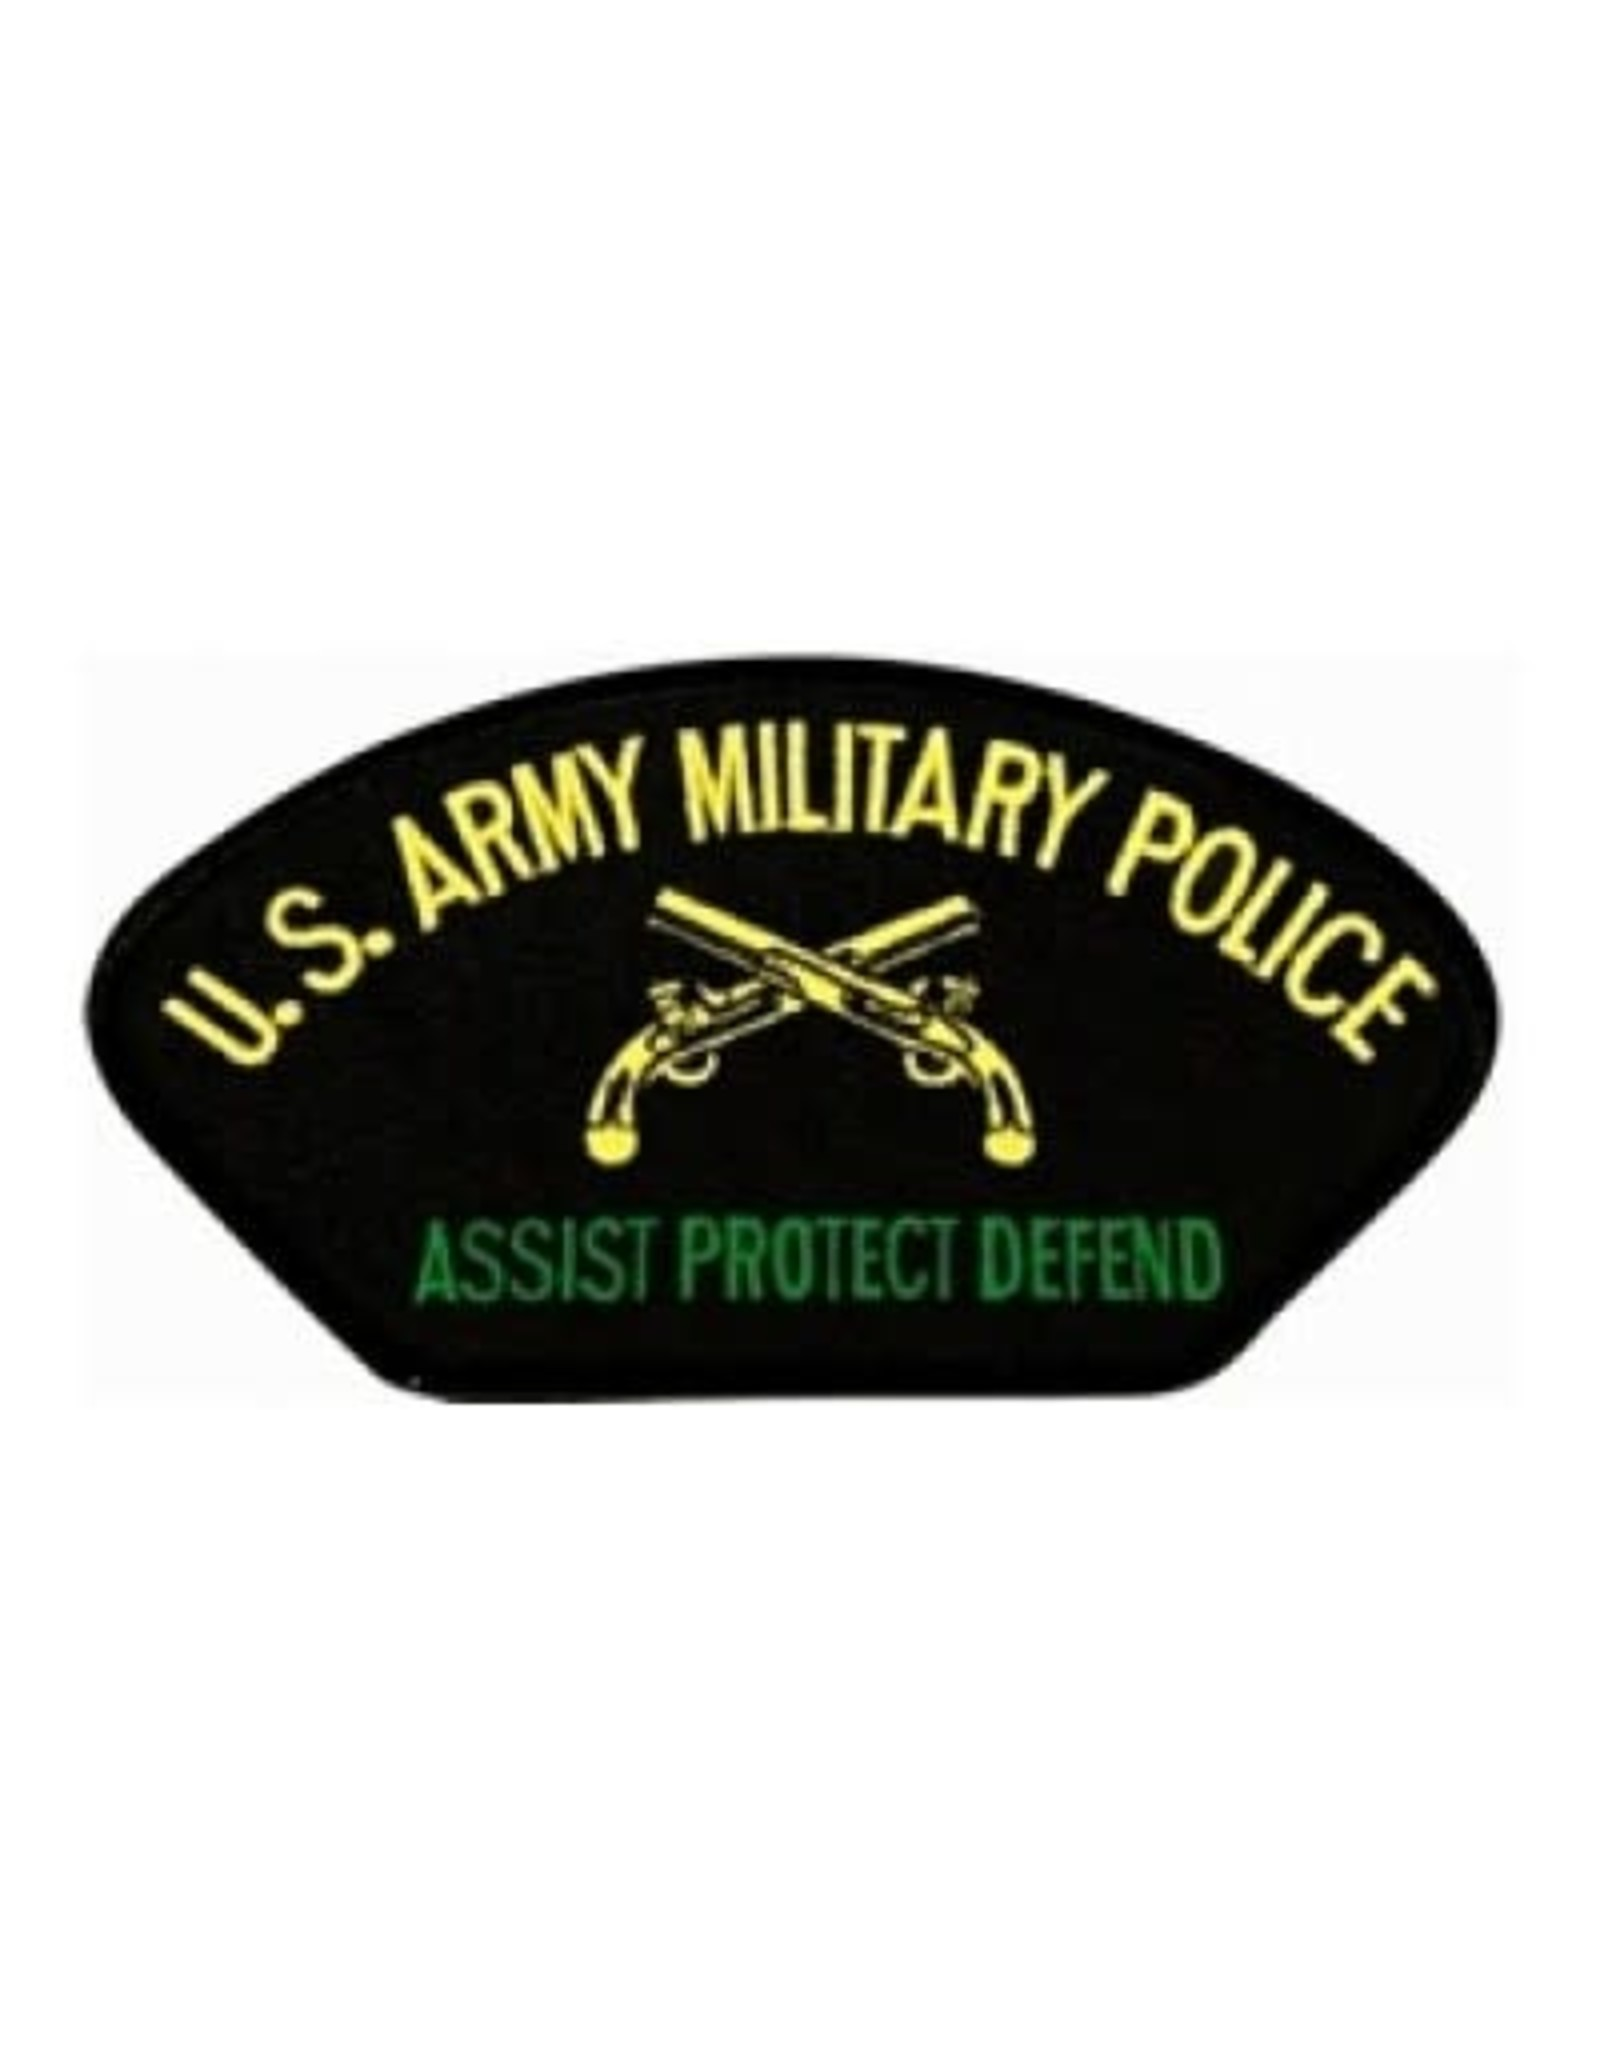 "MidMil Embroidered U.S. Army Military Police Patch with Emblem and Motto 5.2"" wide x 2.7"" high Black"